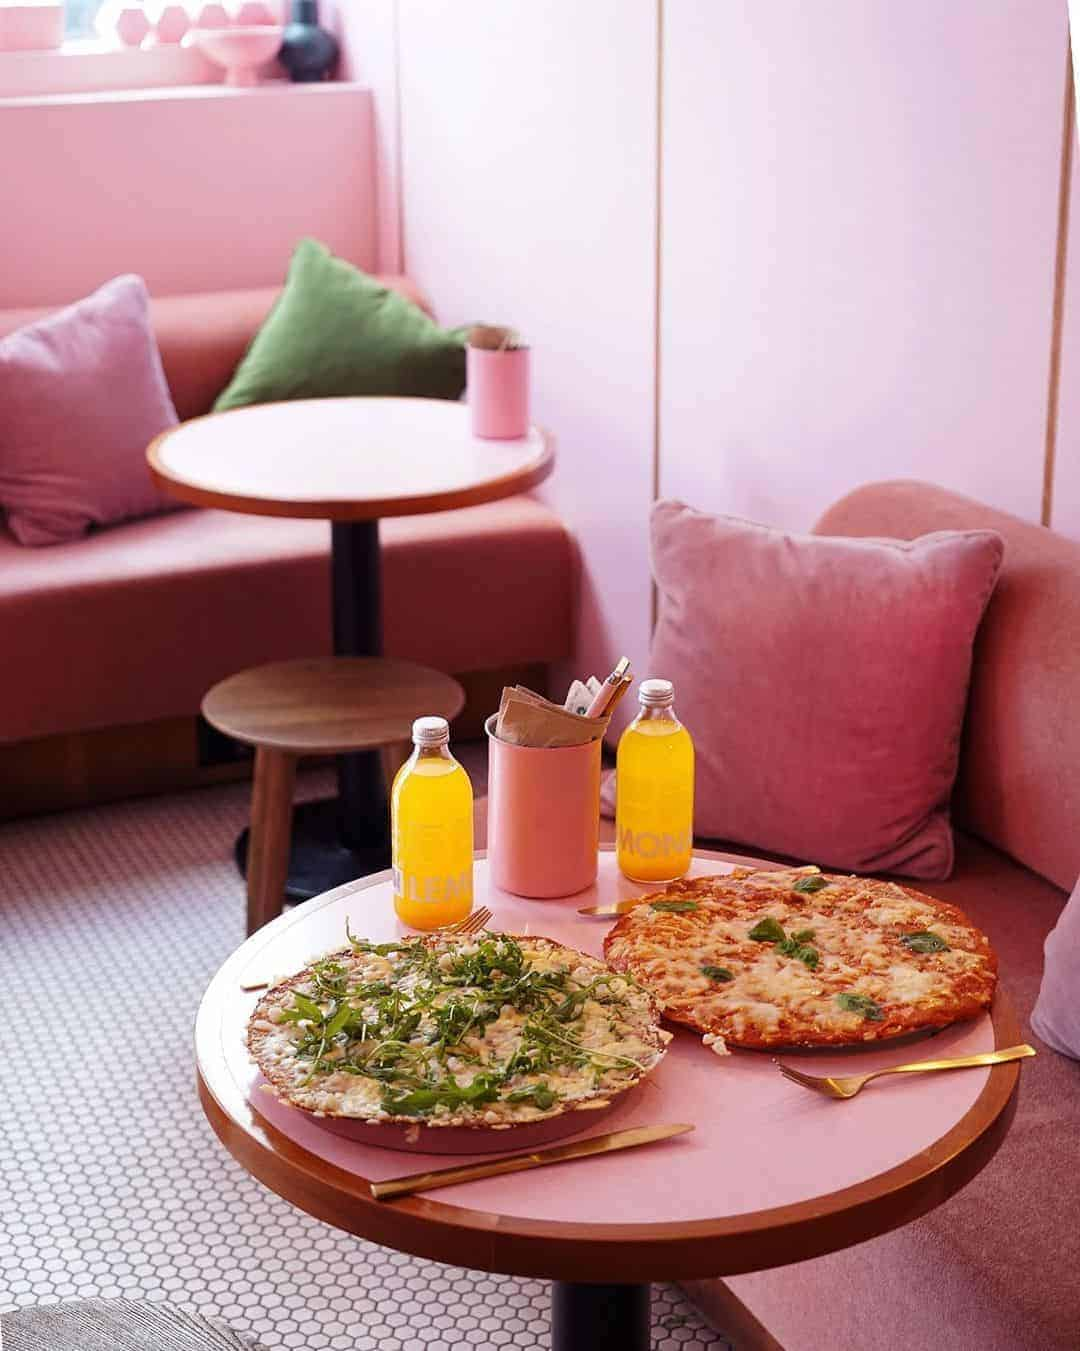 Dog-friendly Pizza Restaurants in London - Humble Pizza